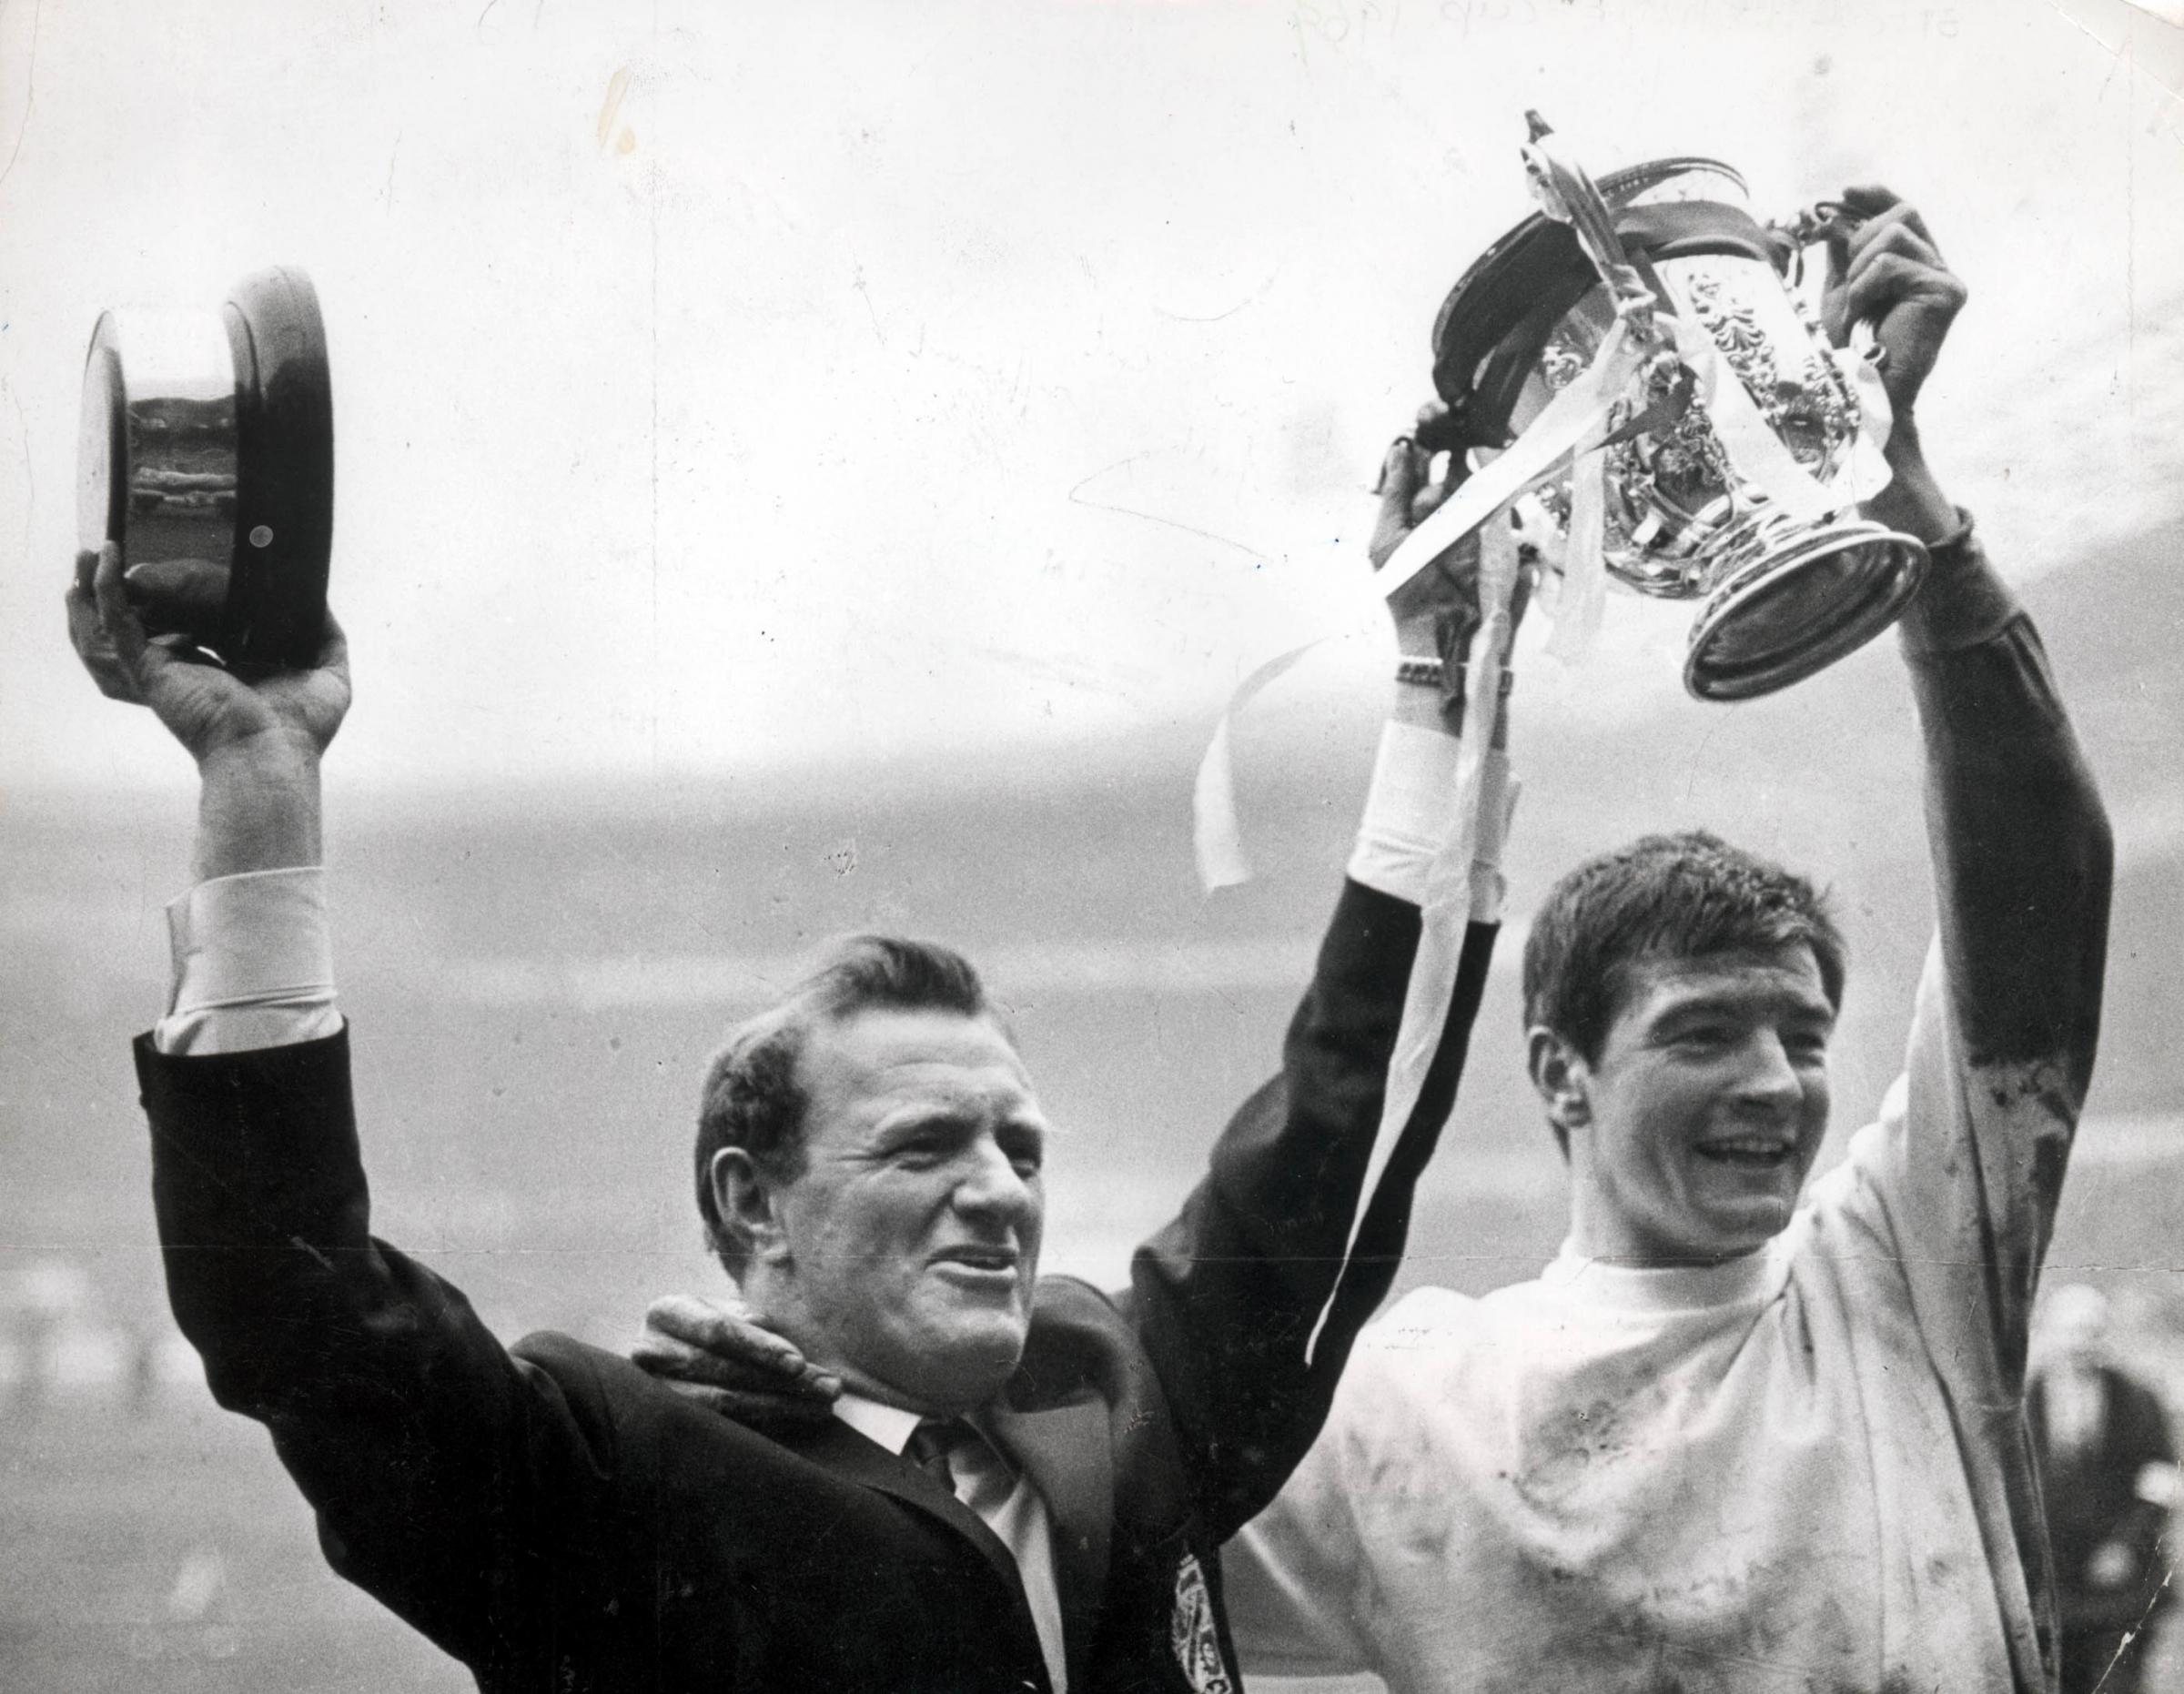 Swindon Town 1969 League Cup final - Town manager Danny Williams and captain Stan Harland celebrate with the trophy after their victory over Arsenal at Wembley